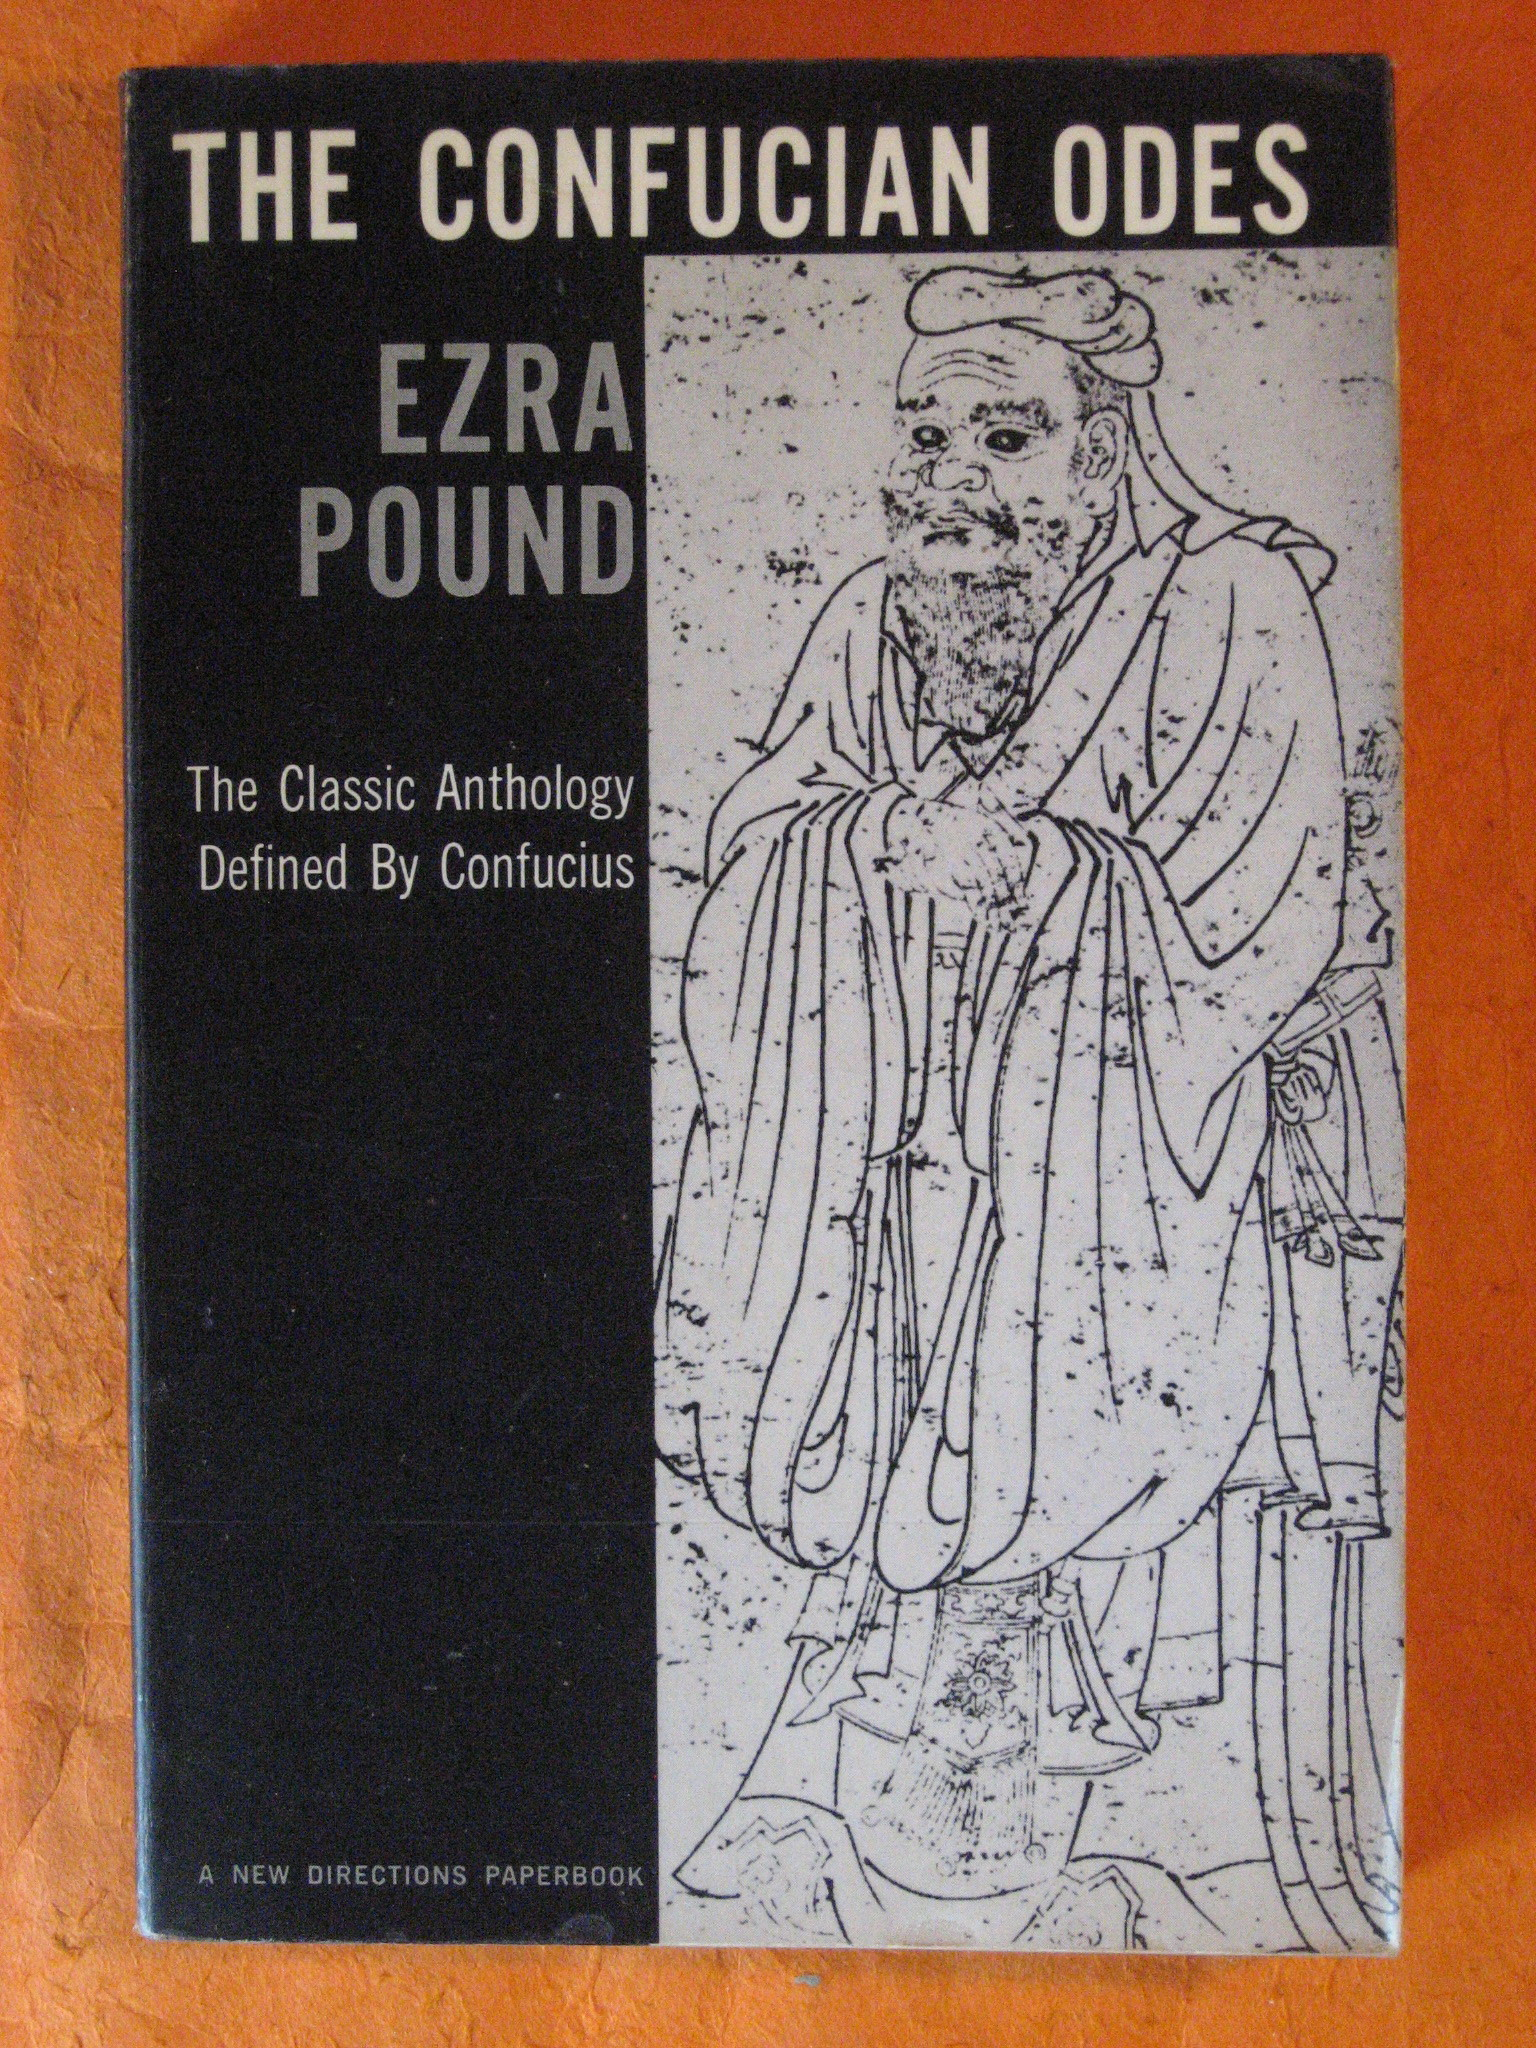 The Confucian Odes:  The Classic Anthology Defined By Confucius, Pound, Ezra